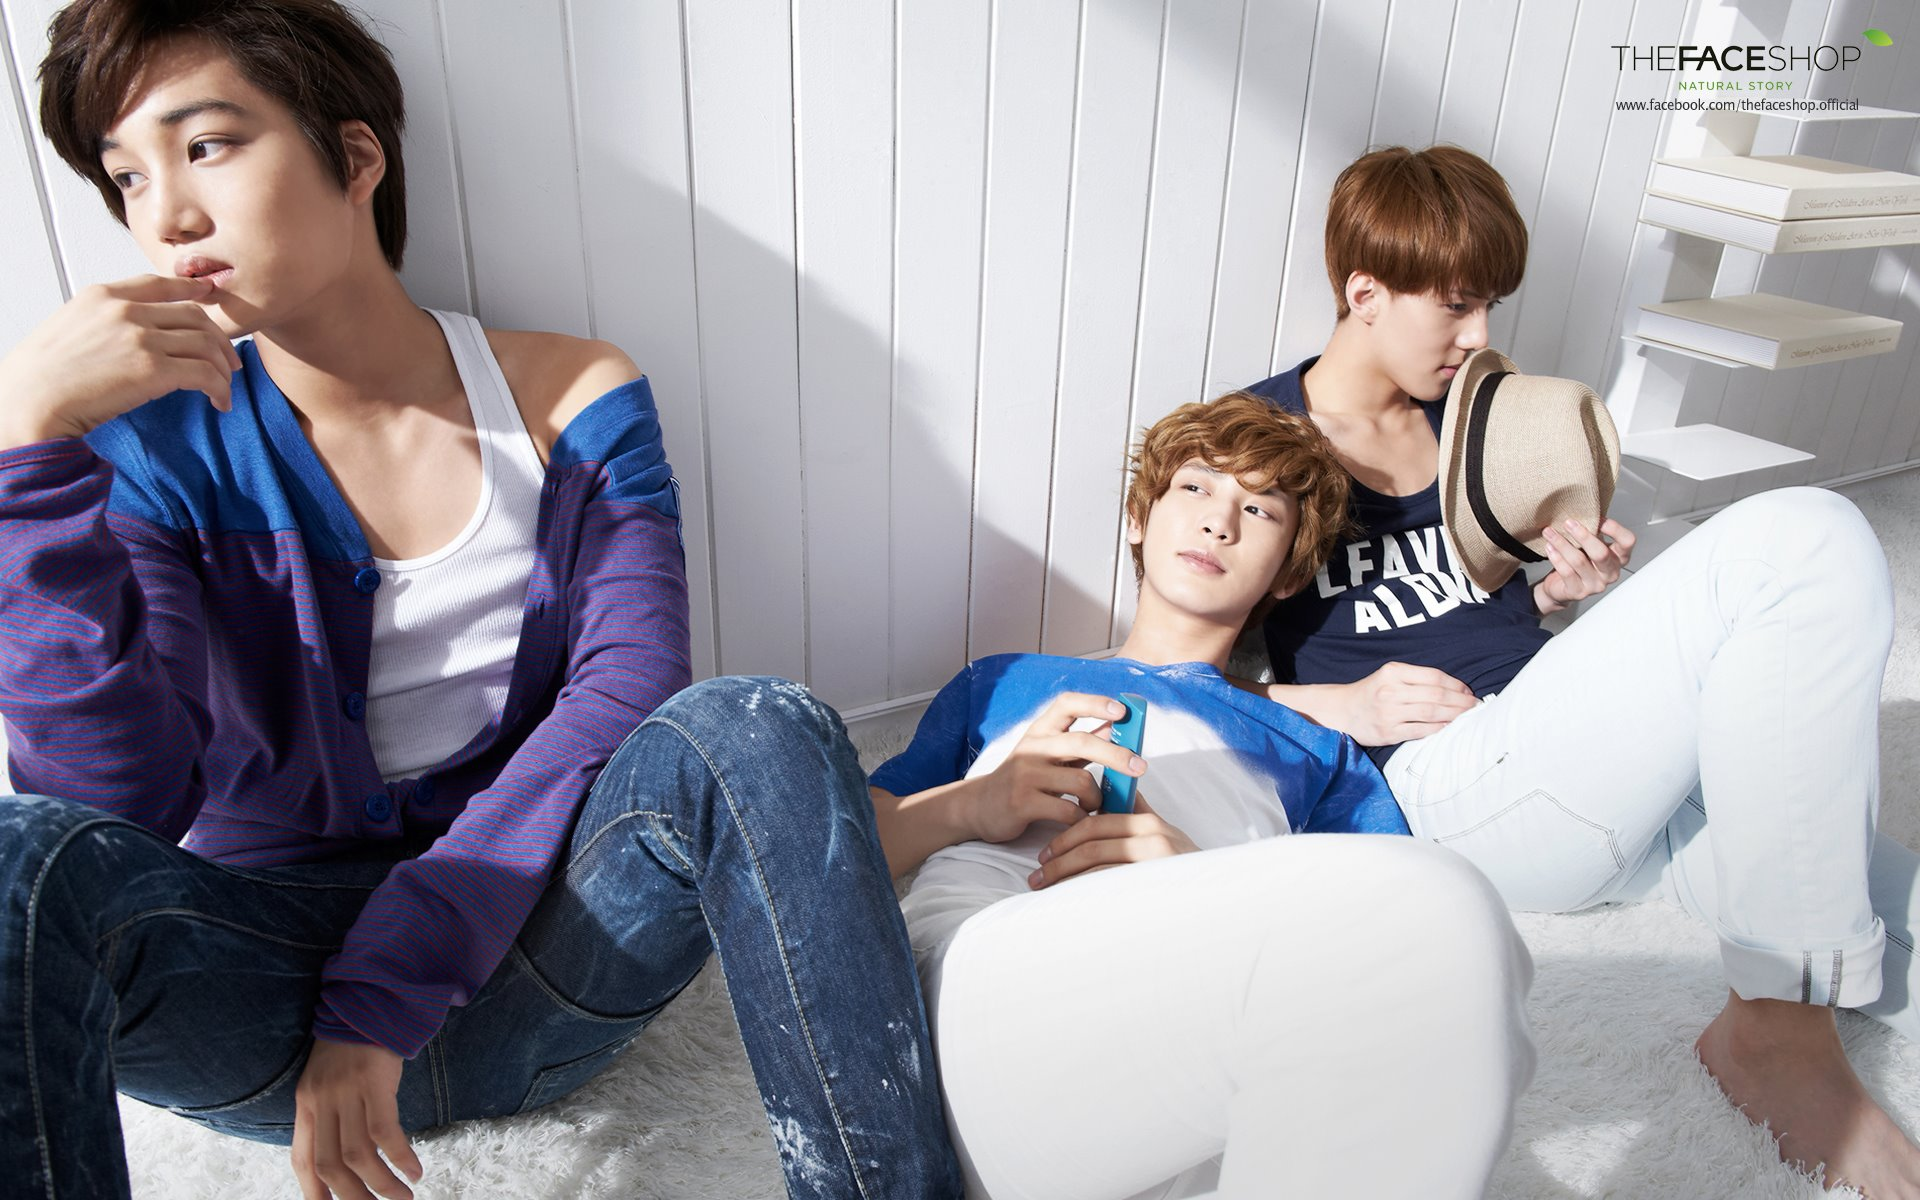 Kpop EXO-K for The Face Shop